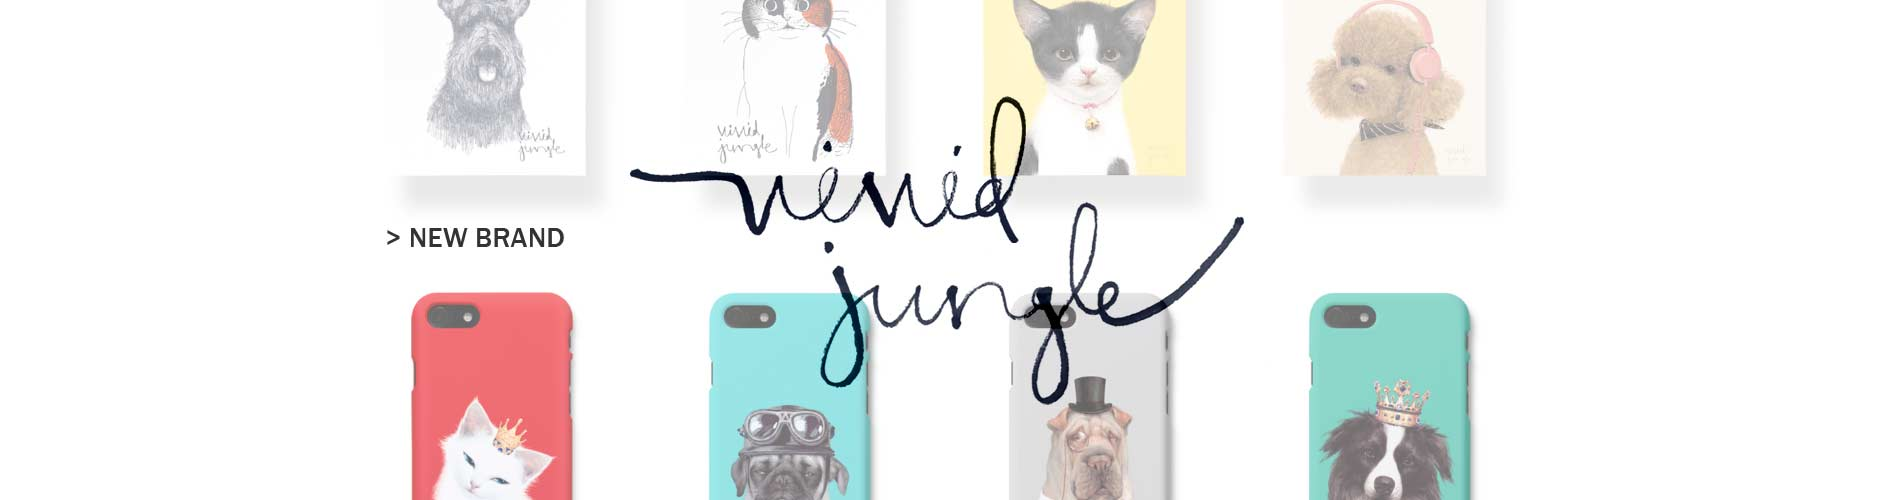 New brand - Vivid jungle